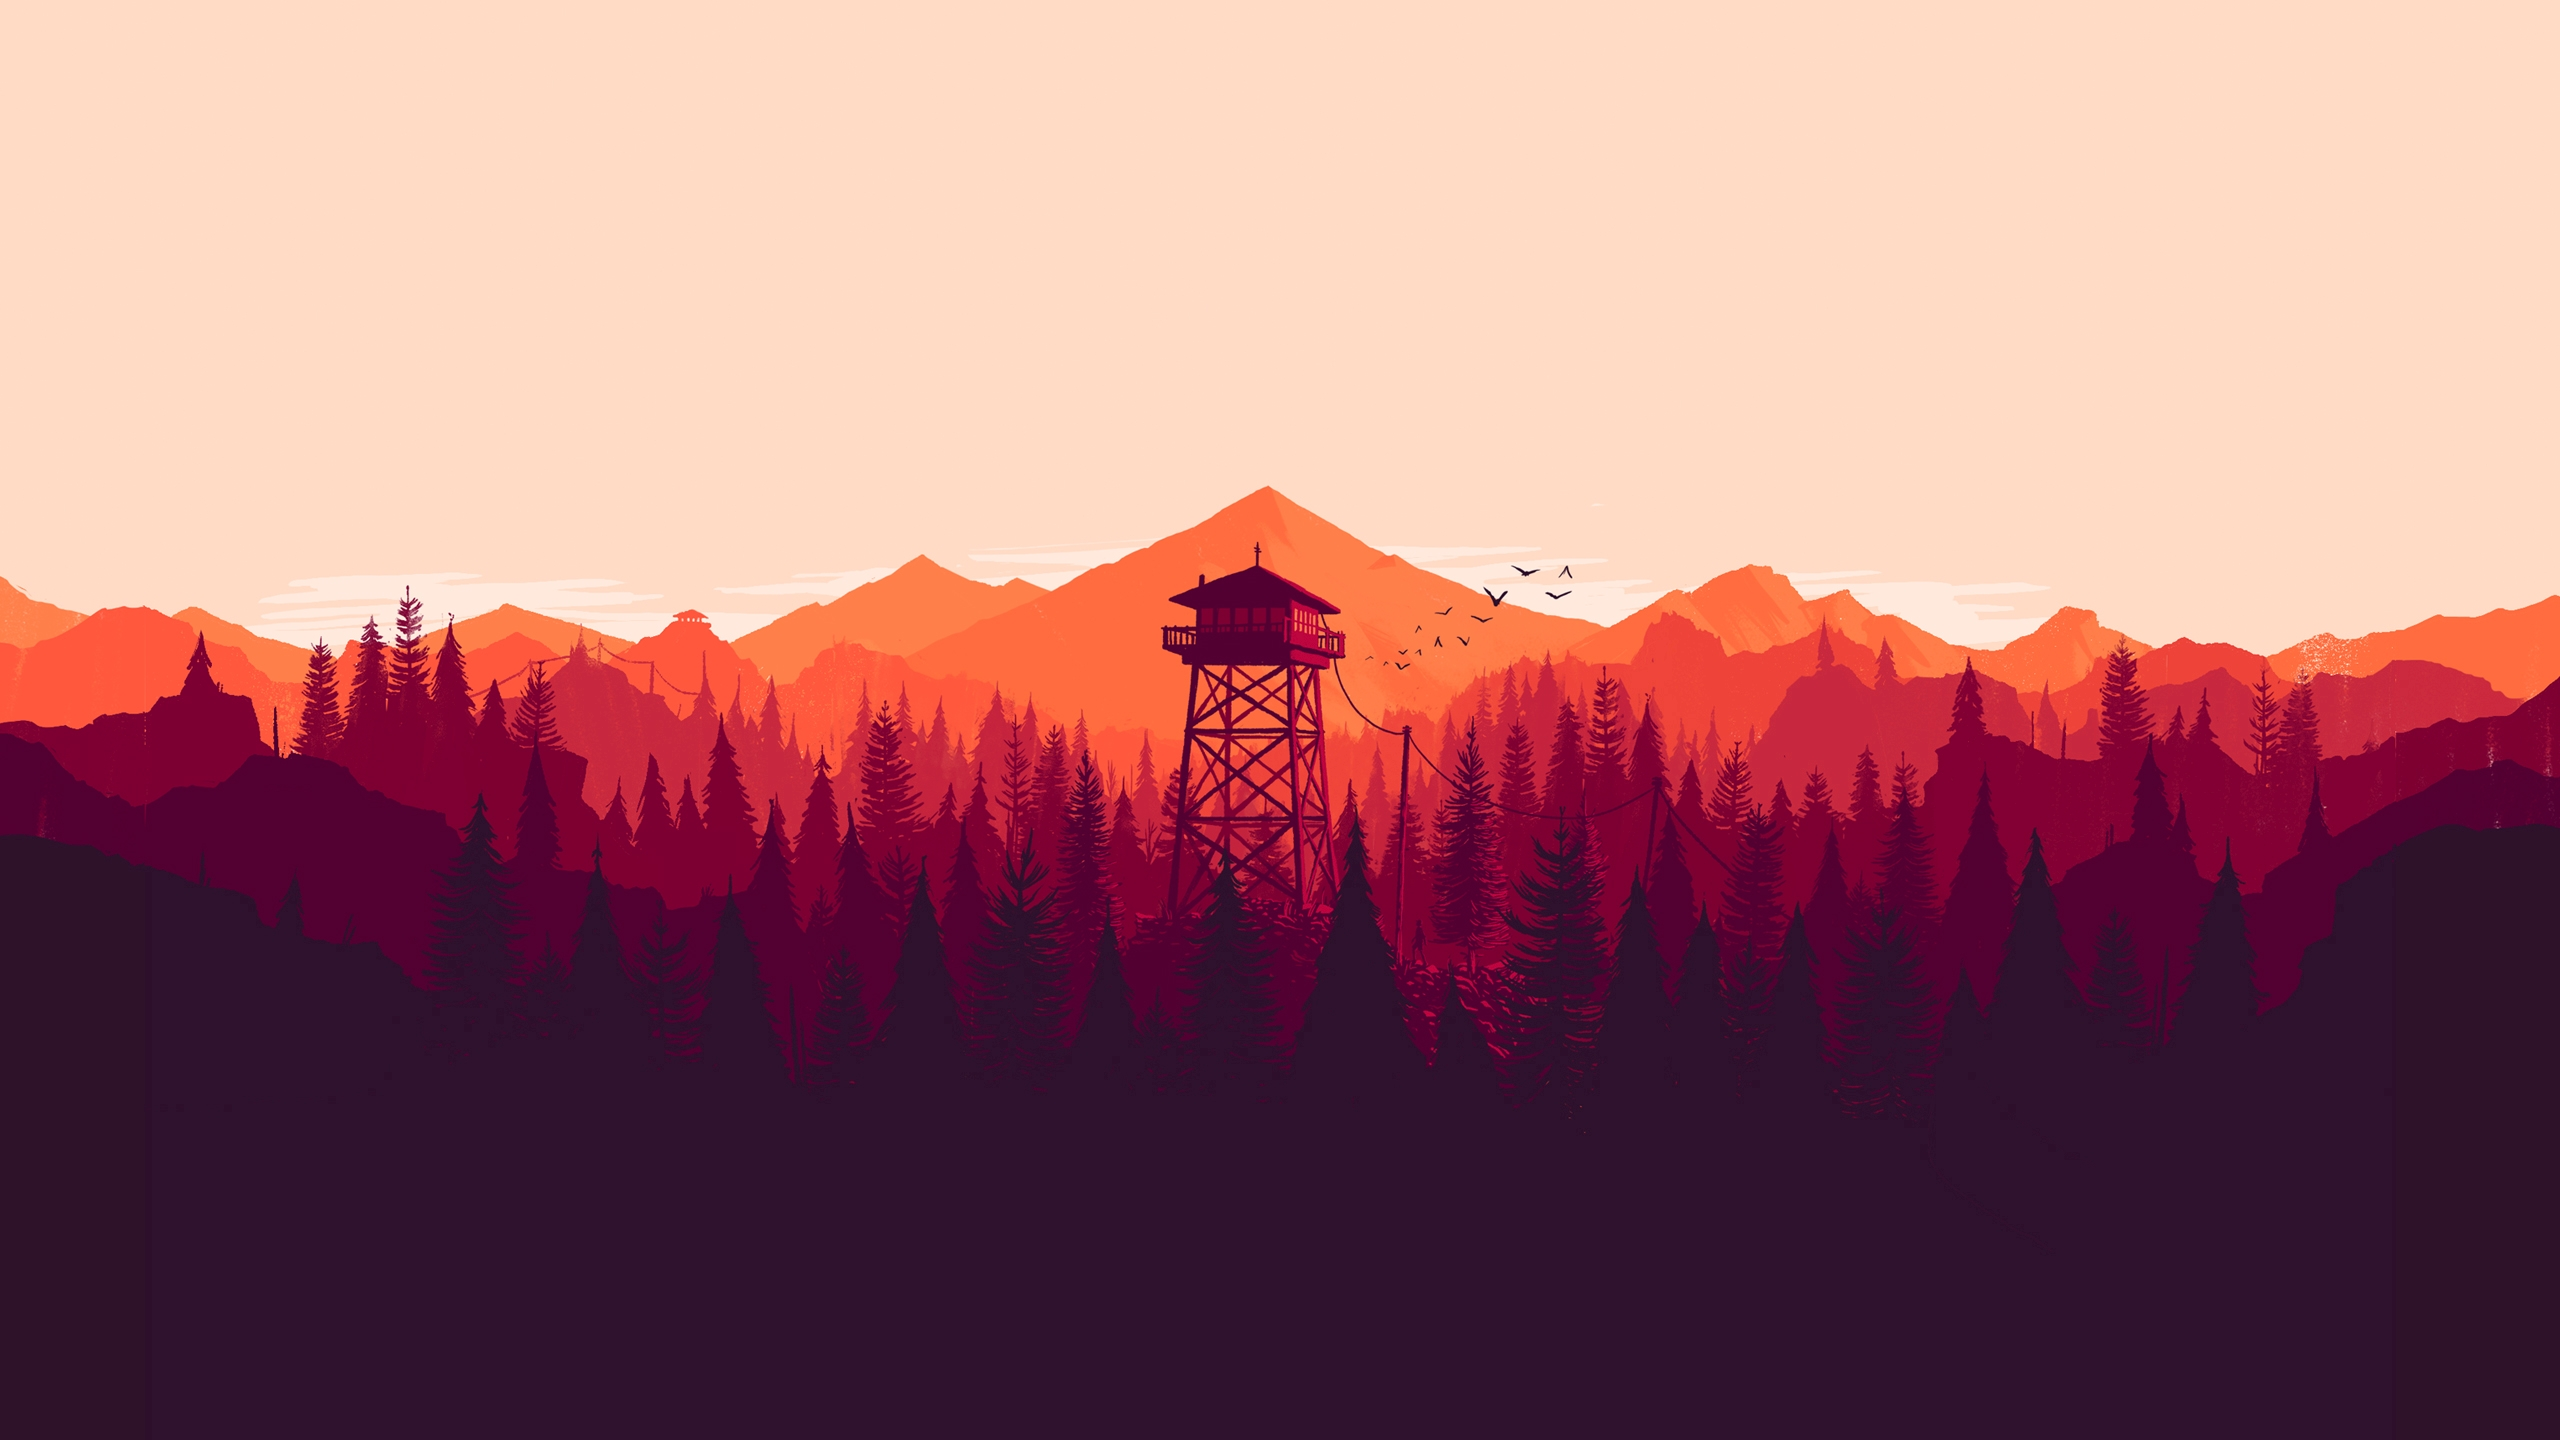 firewatch front page